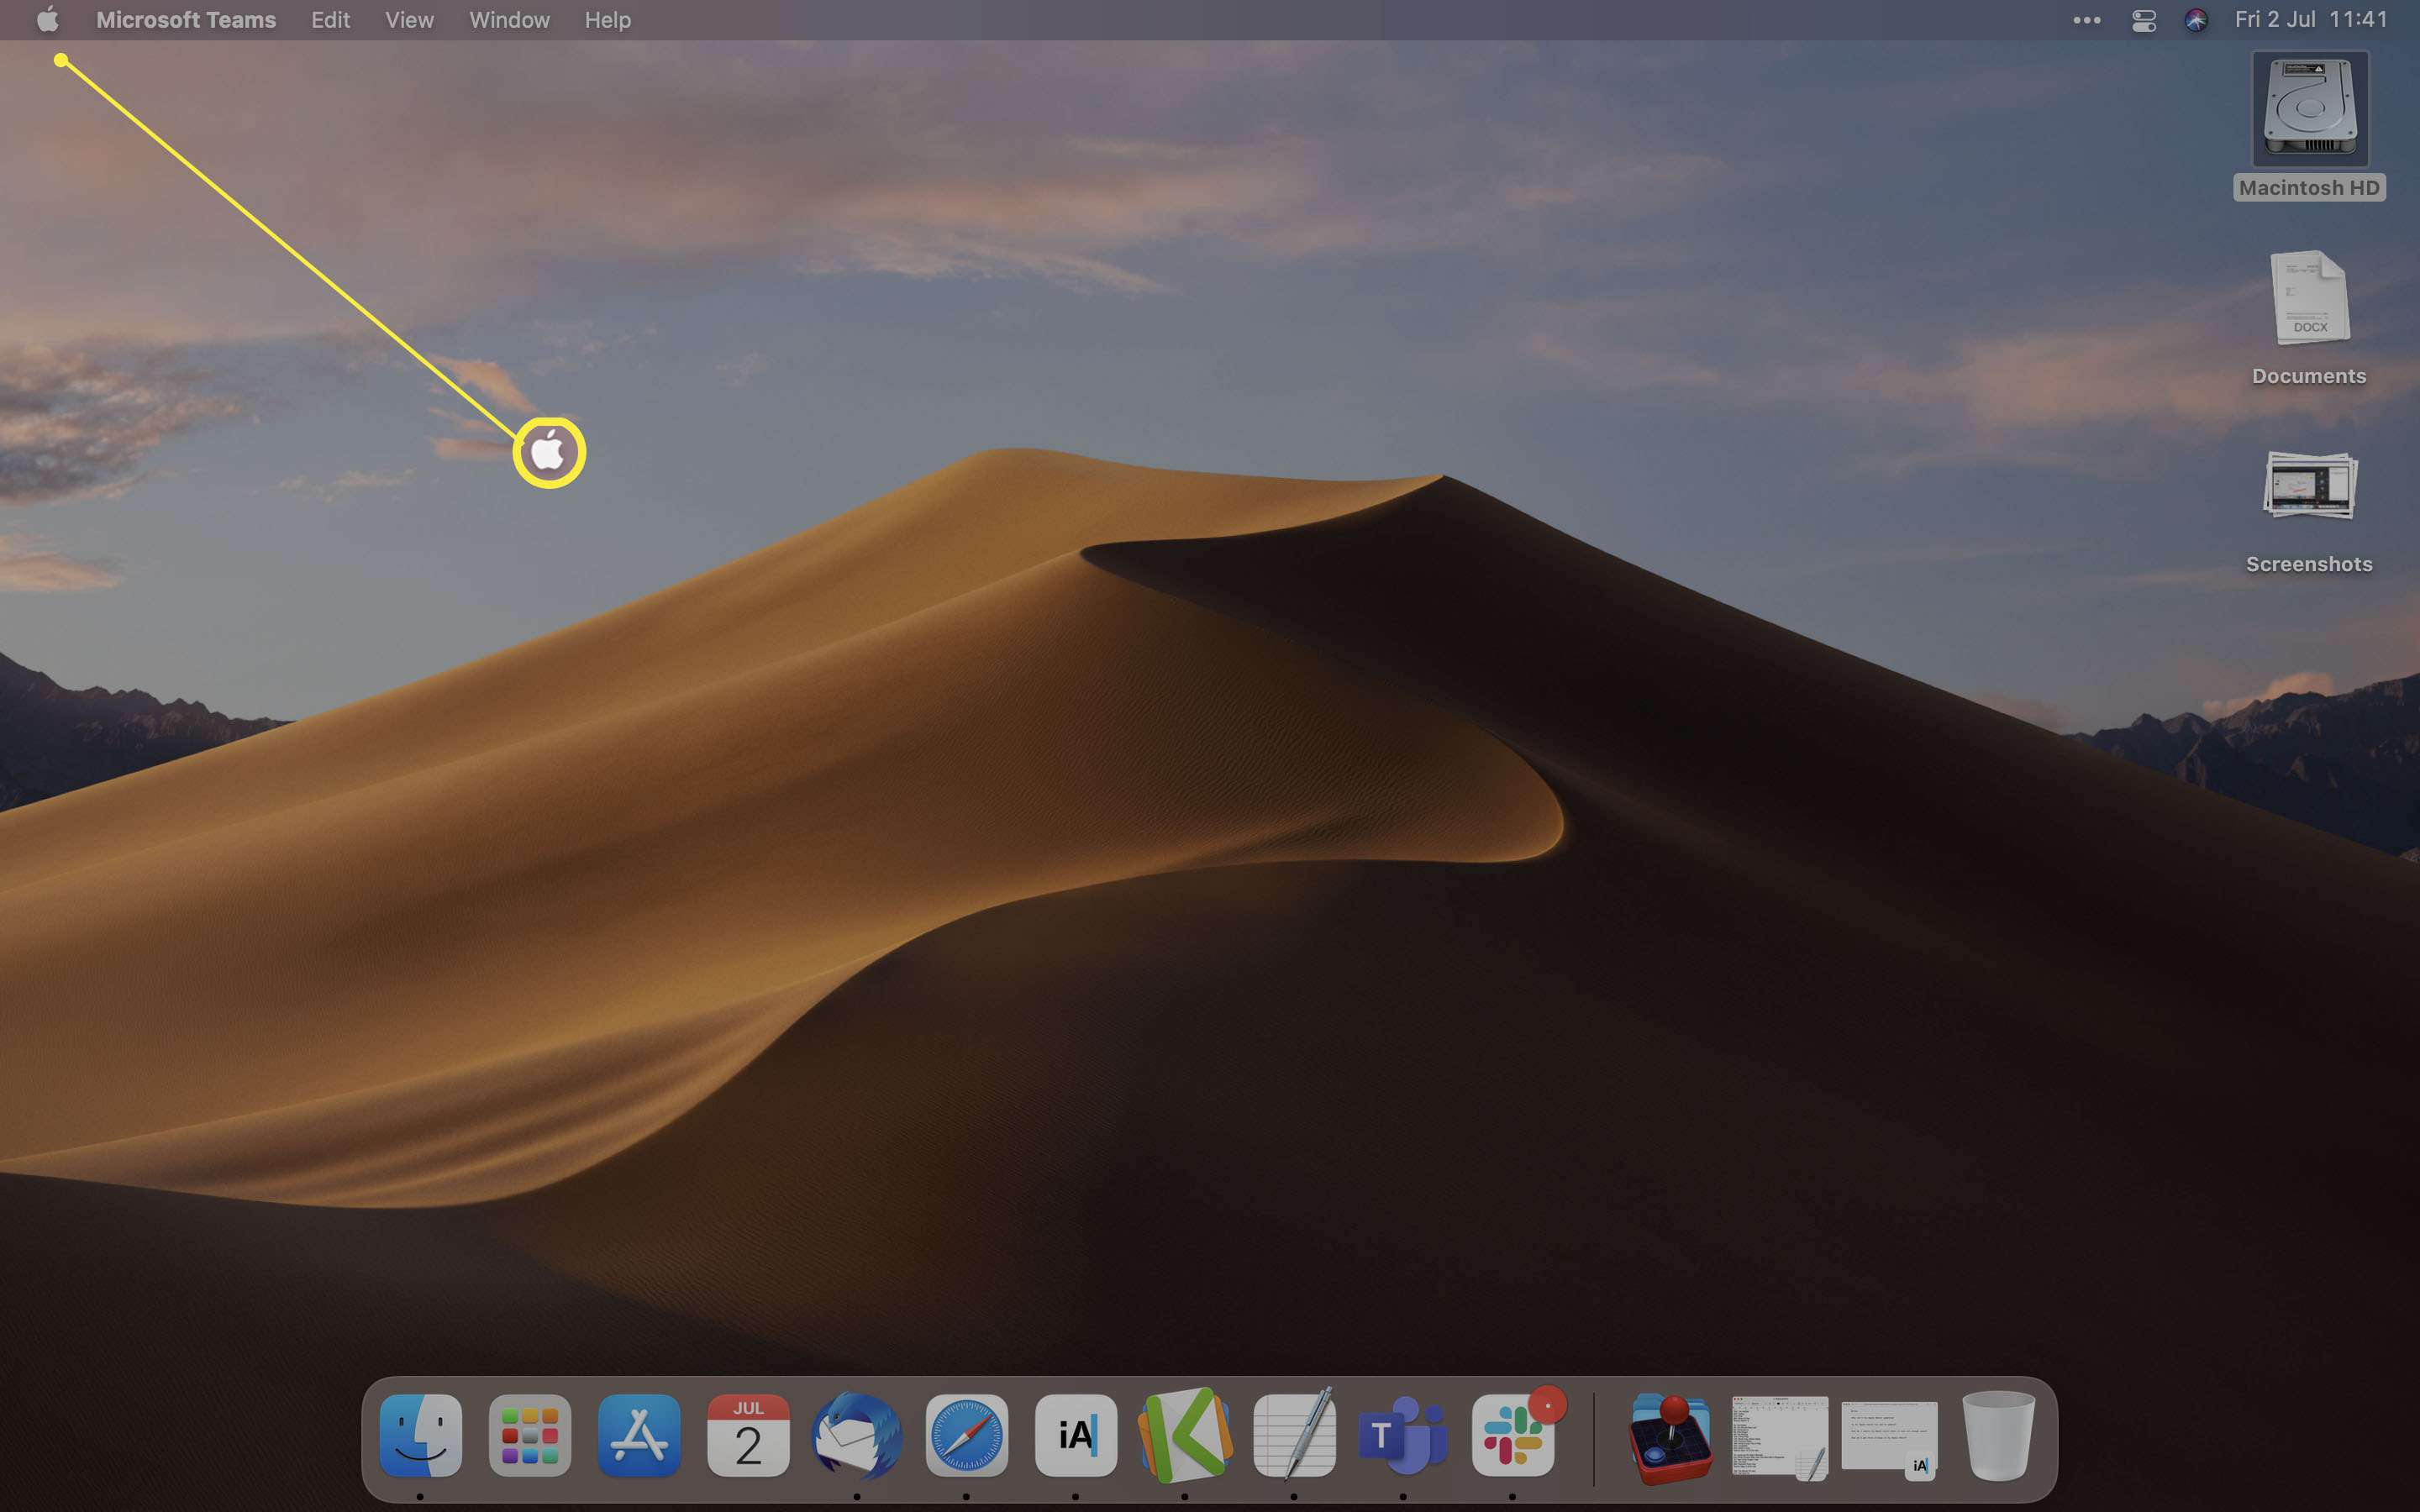 MacOS desktop with Apple logo highlighted